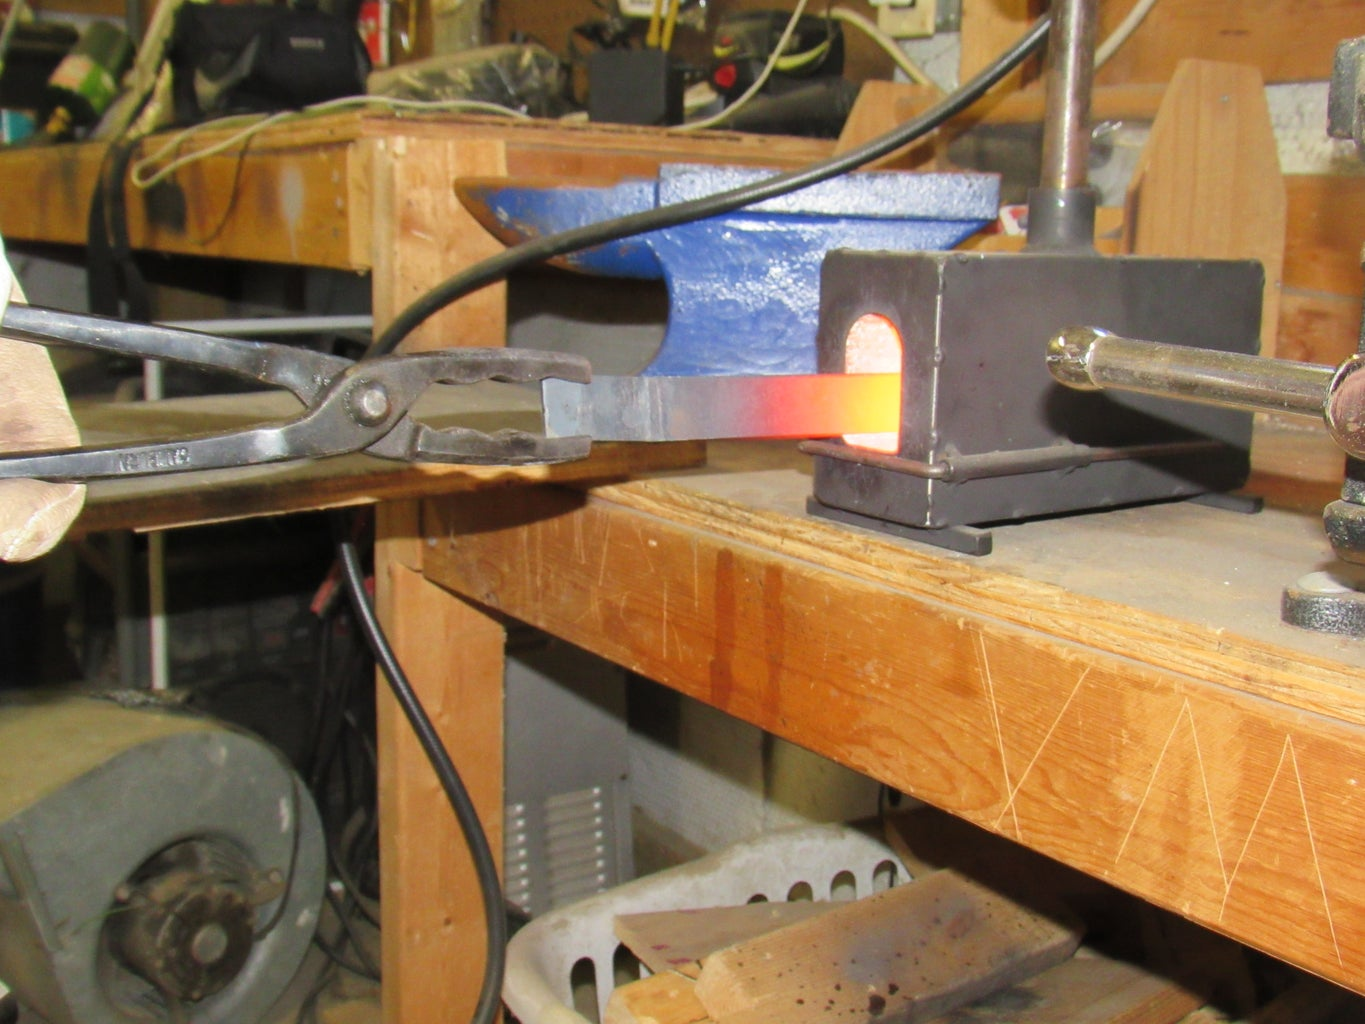 Flattening Out the Steel